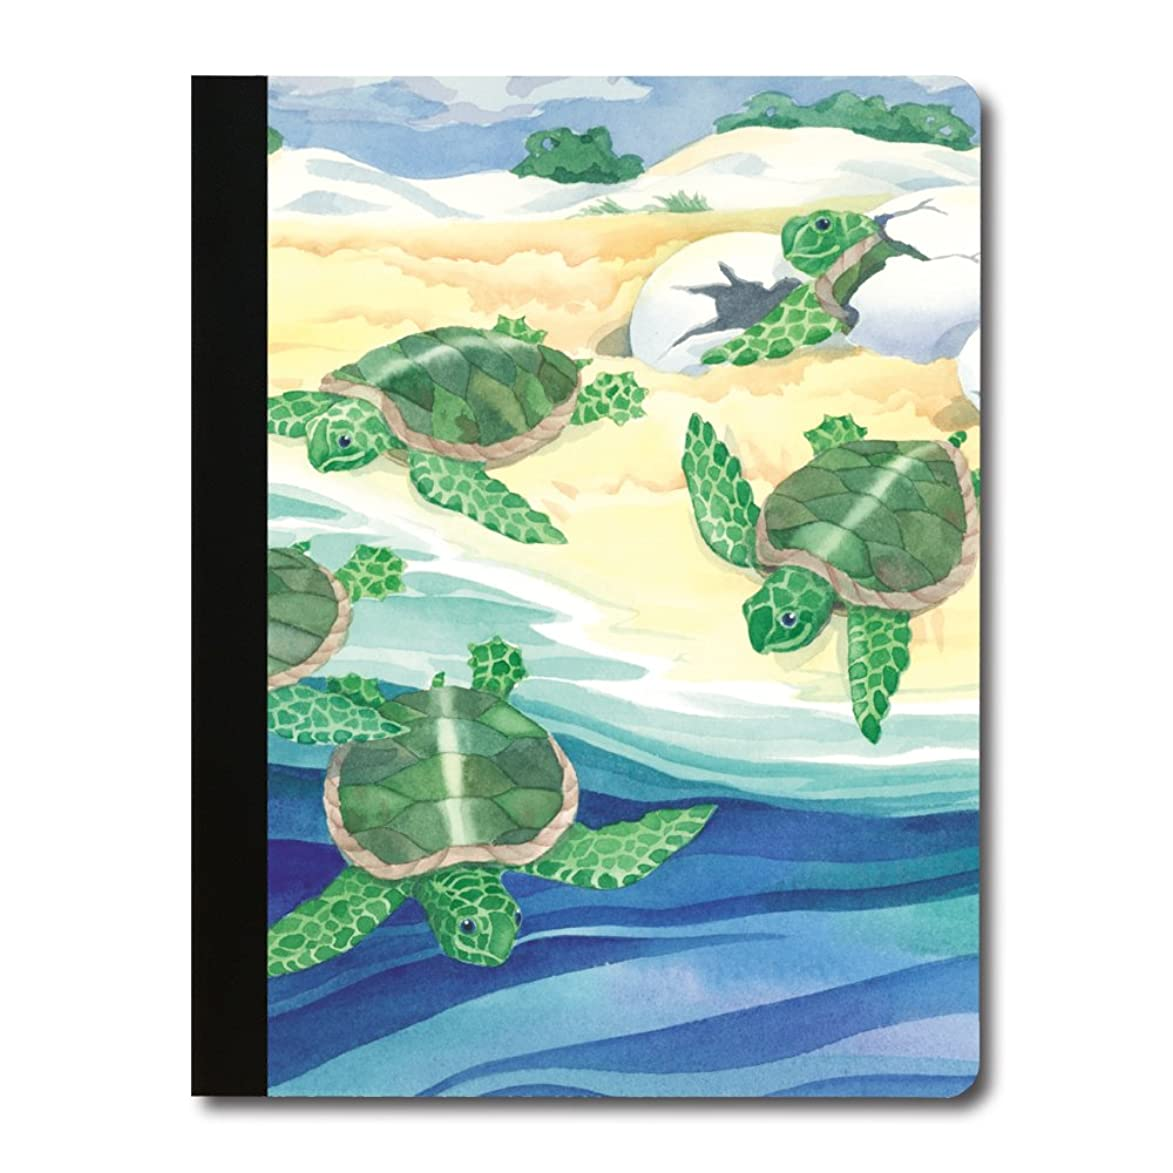 Tree-Free Greetings Sweet Baby Turtles Soft Cover 140 Page  College Ruled Notebook, 9.75 x 7.25 Inches (CJ48400)